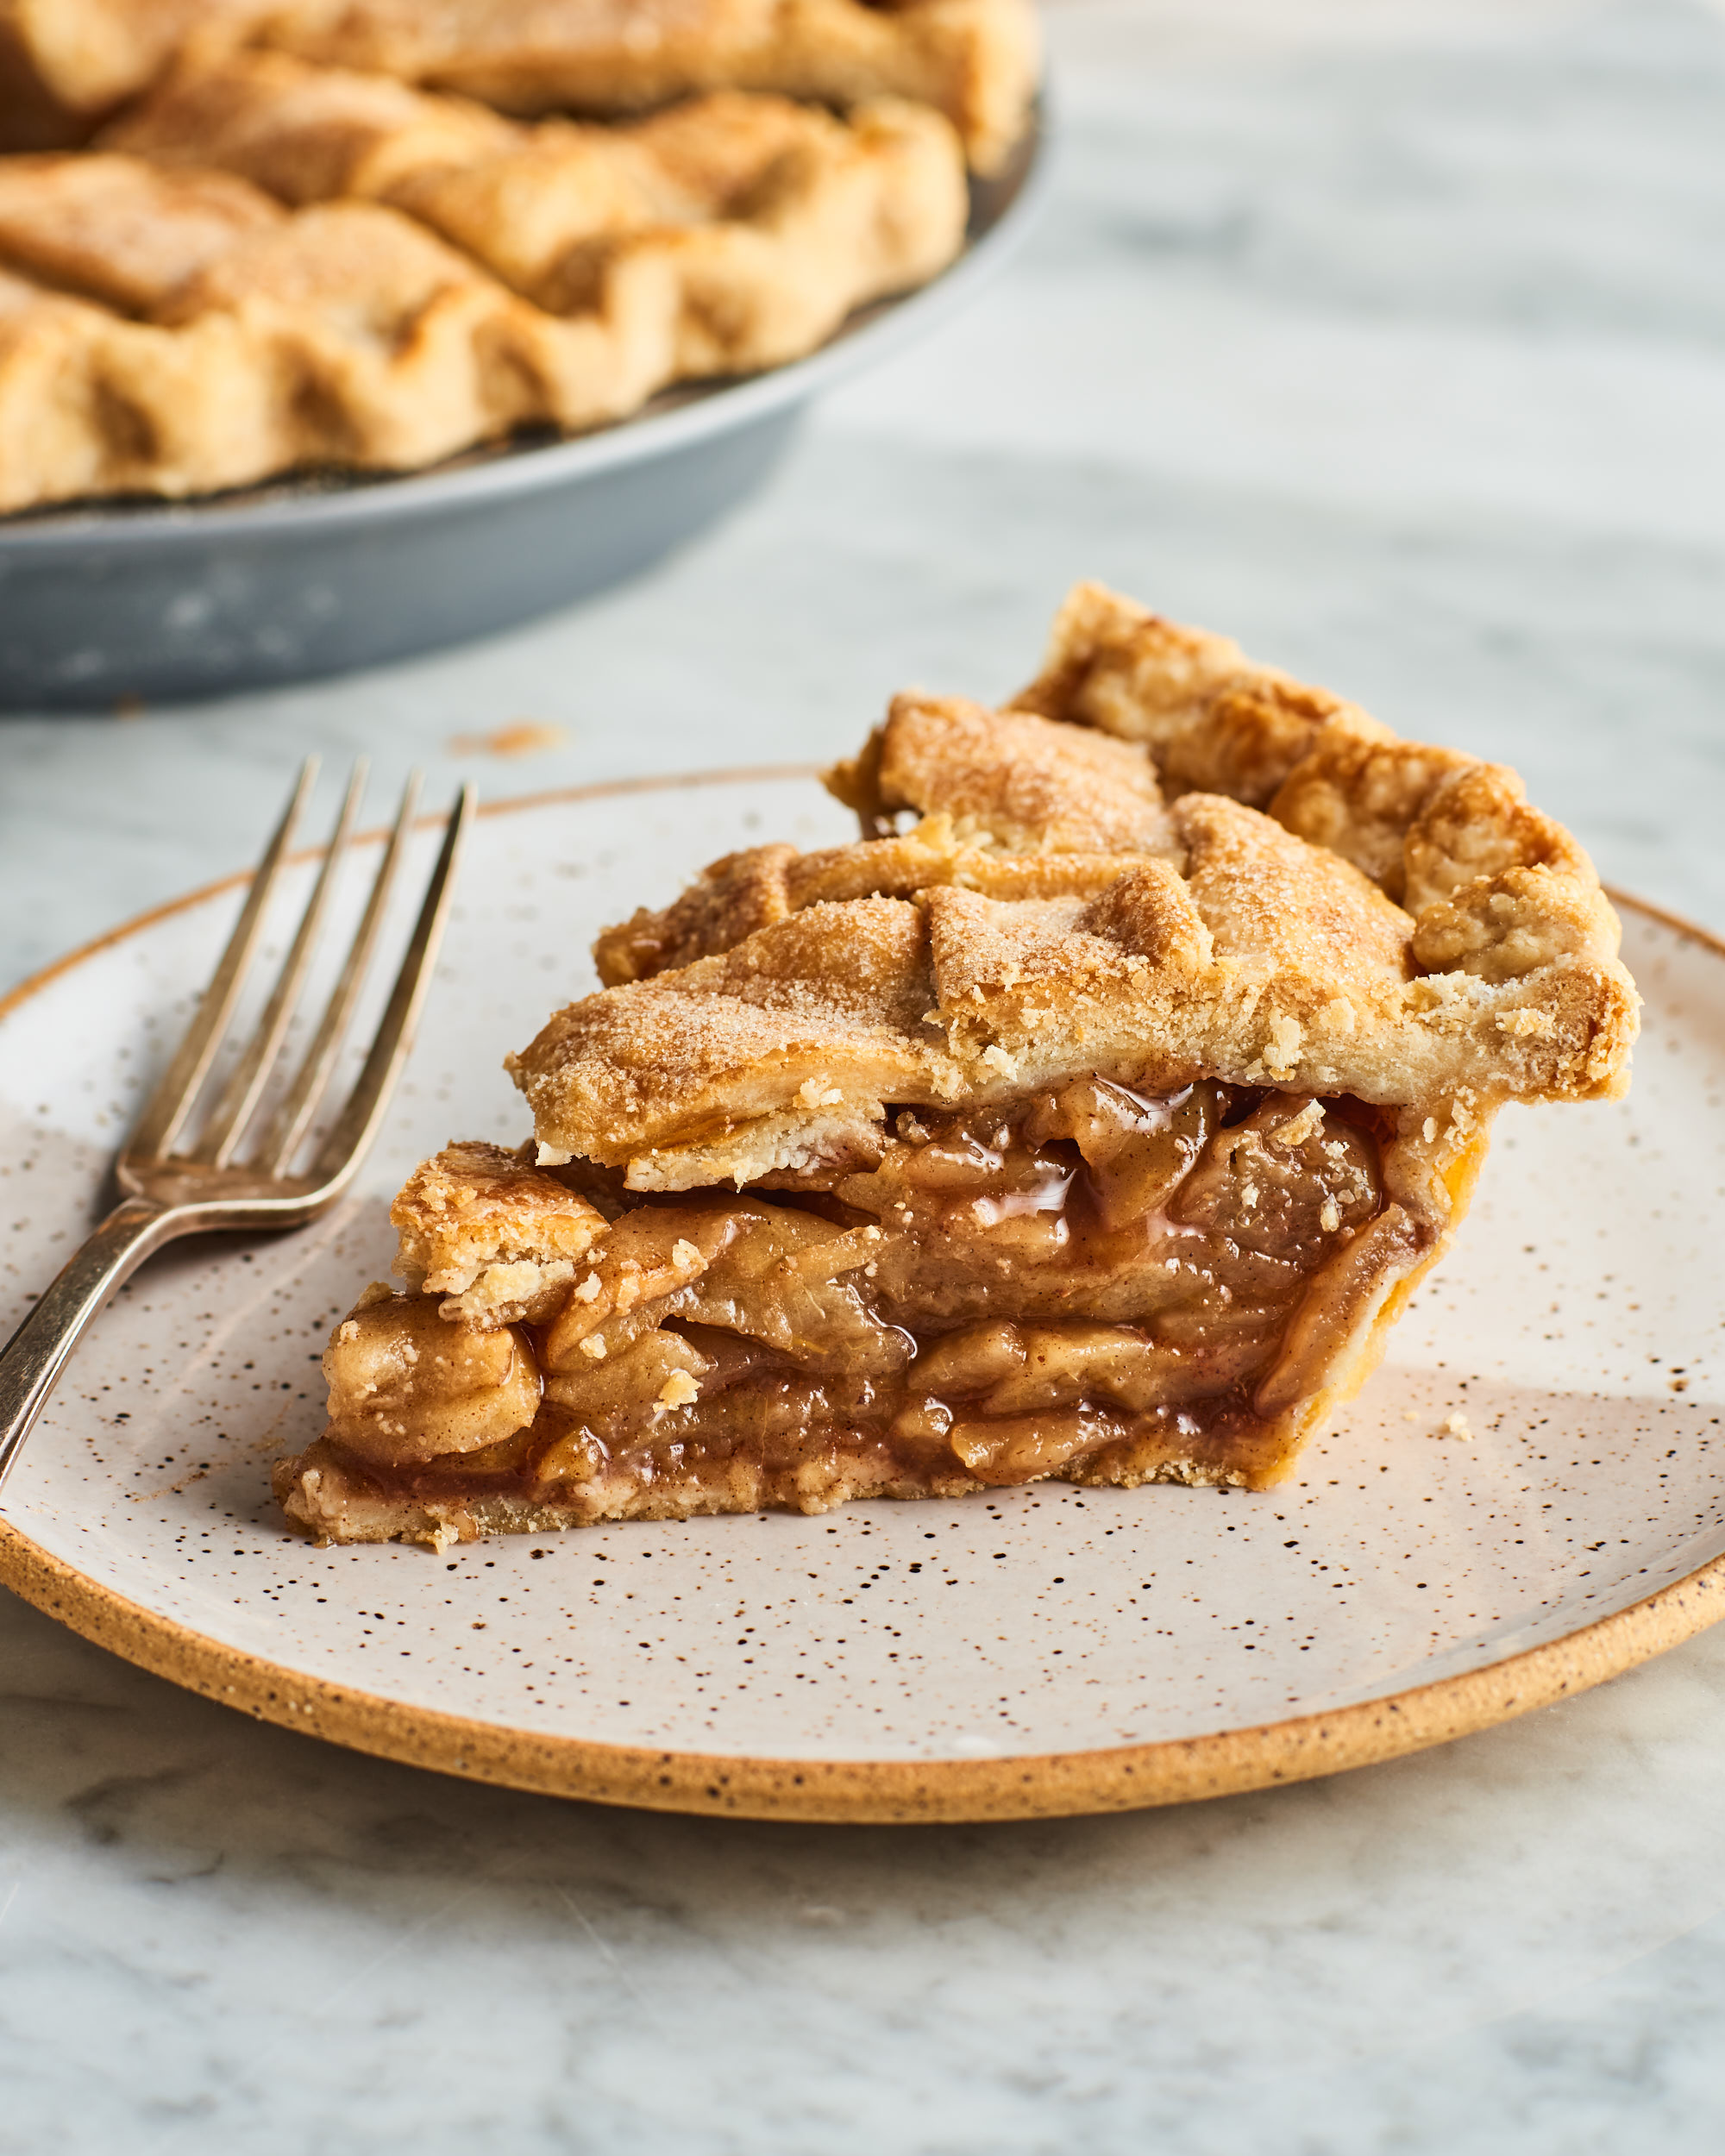 We Tested 20 Well Loved Apple Pie Recipes. Here's How They Compared ...